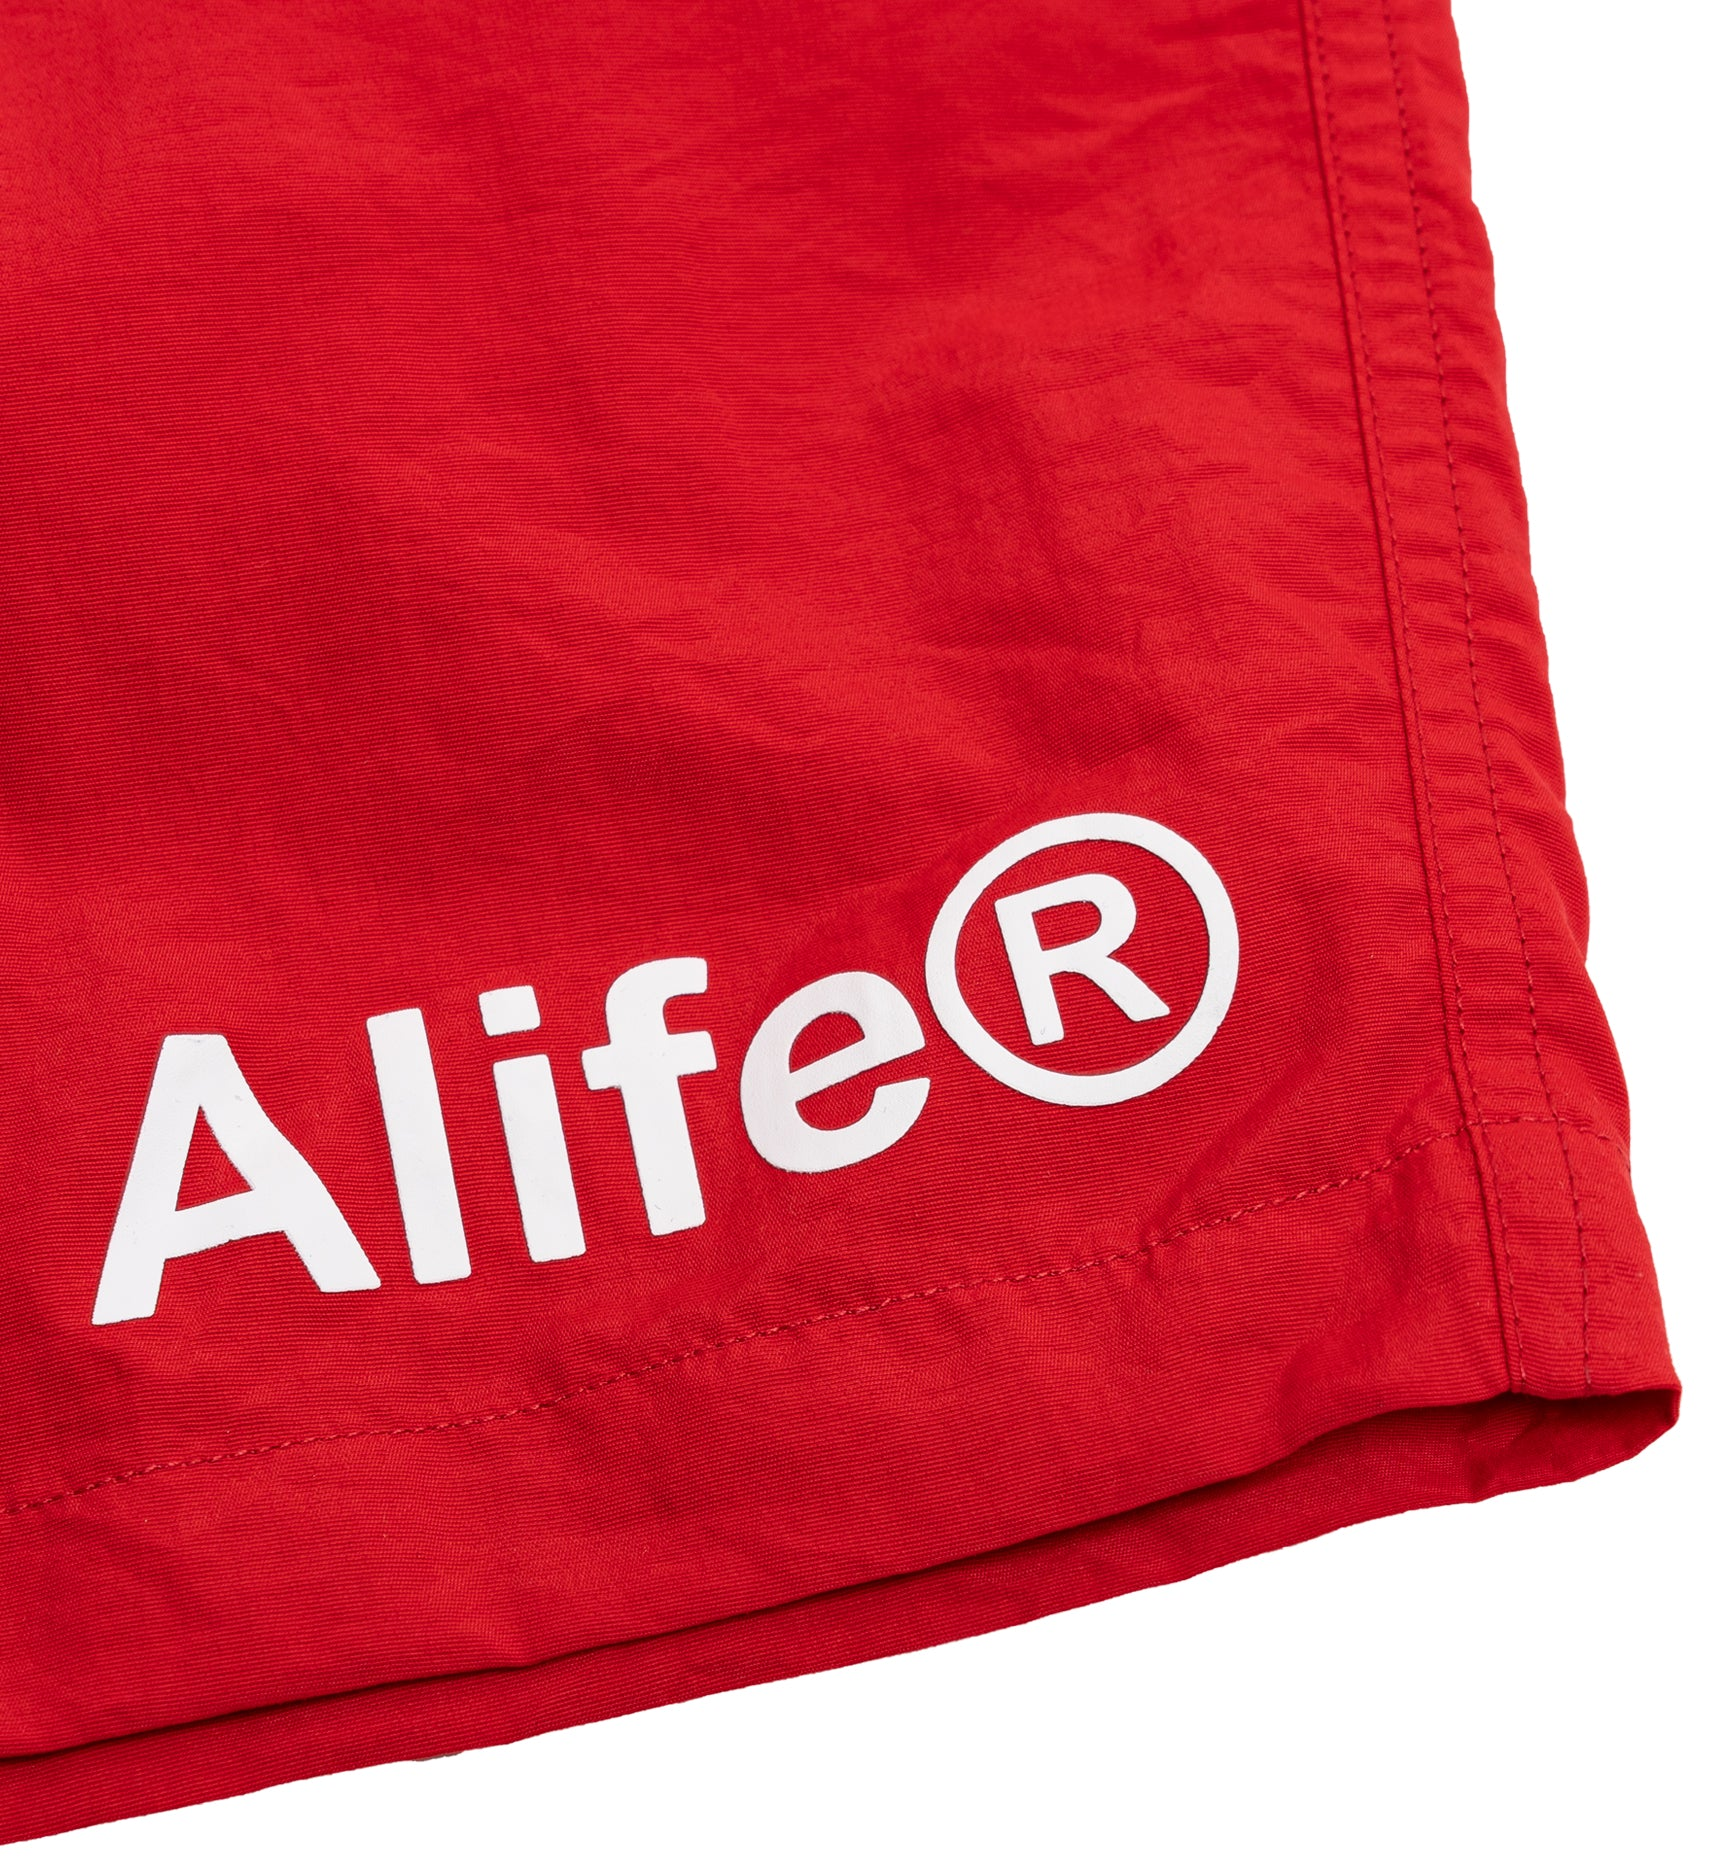 Alife Swim/Run Nylon Short - Red